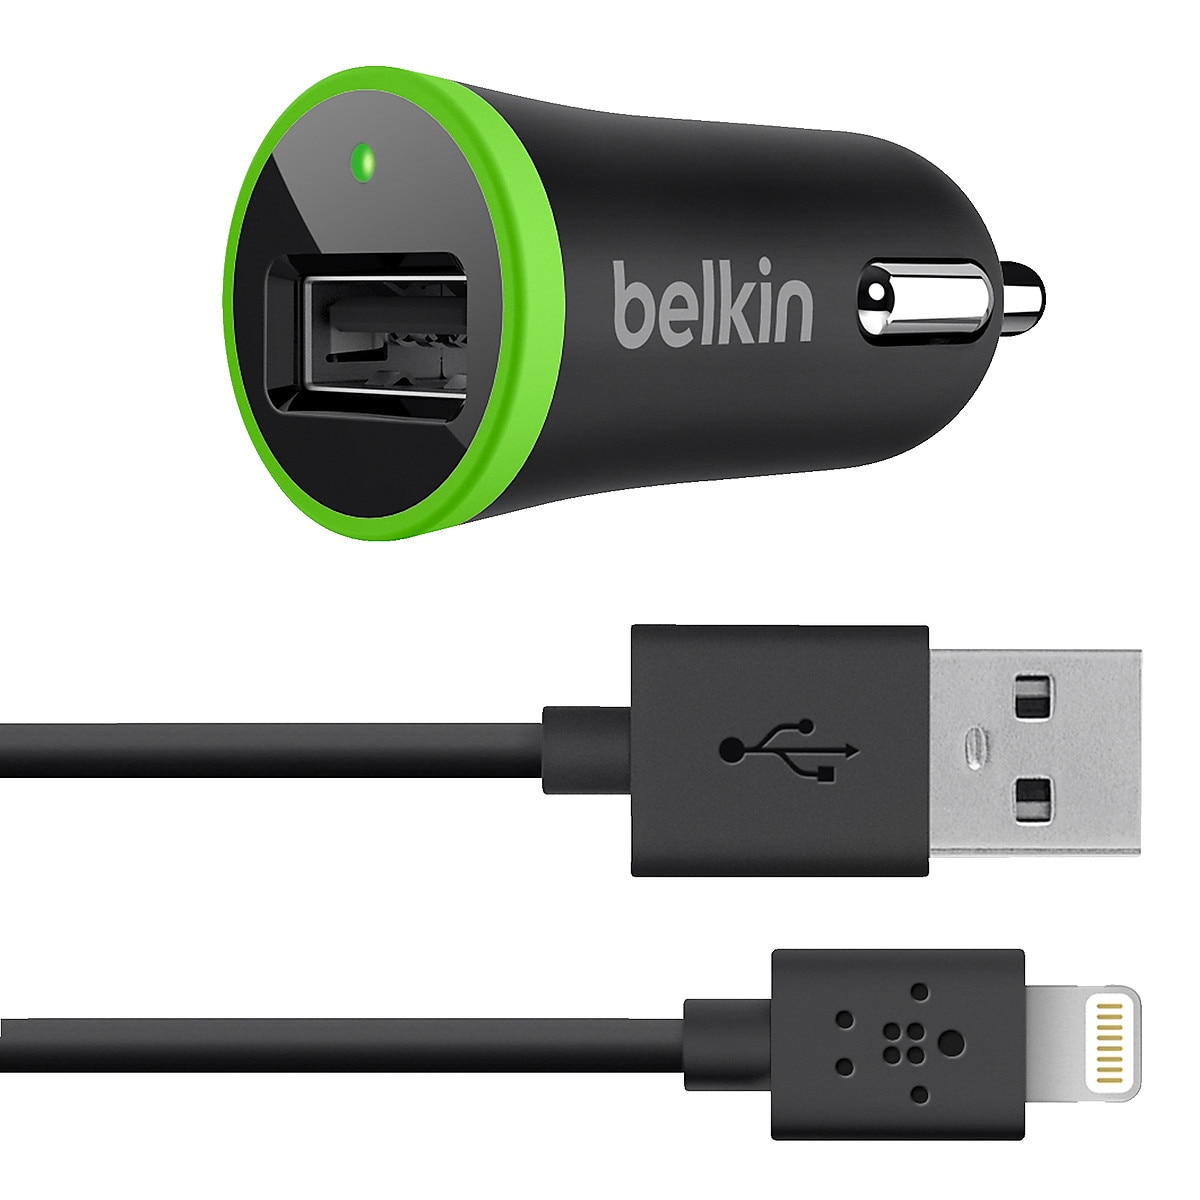 Belkin 12 V Charger with Lightning Connector for iPod/iPhone/iPad